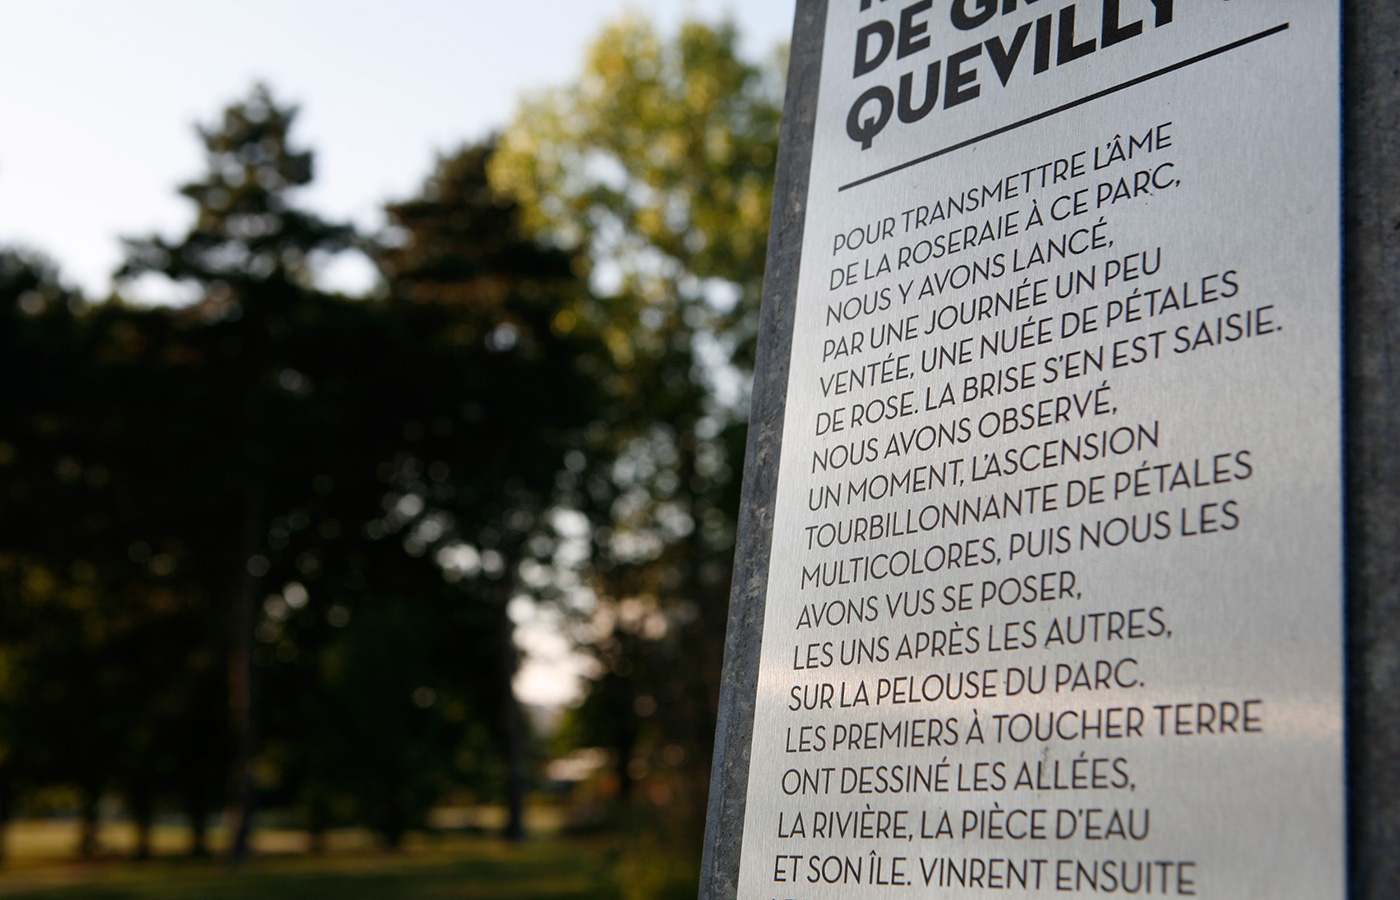 Roseraie_Grand-Quevilly_09